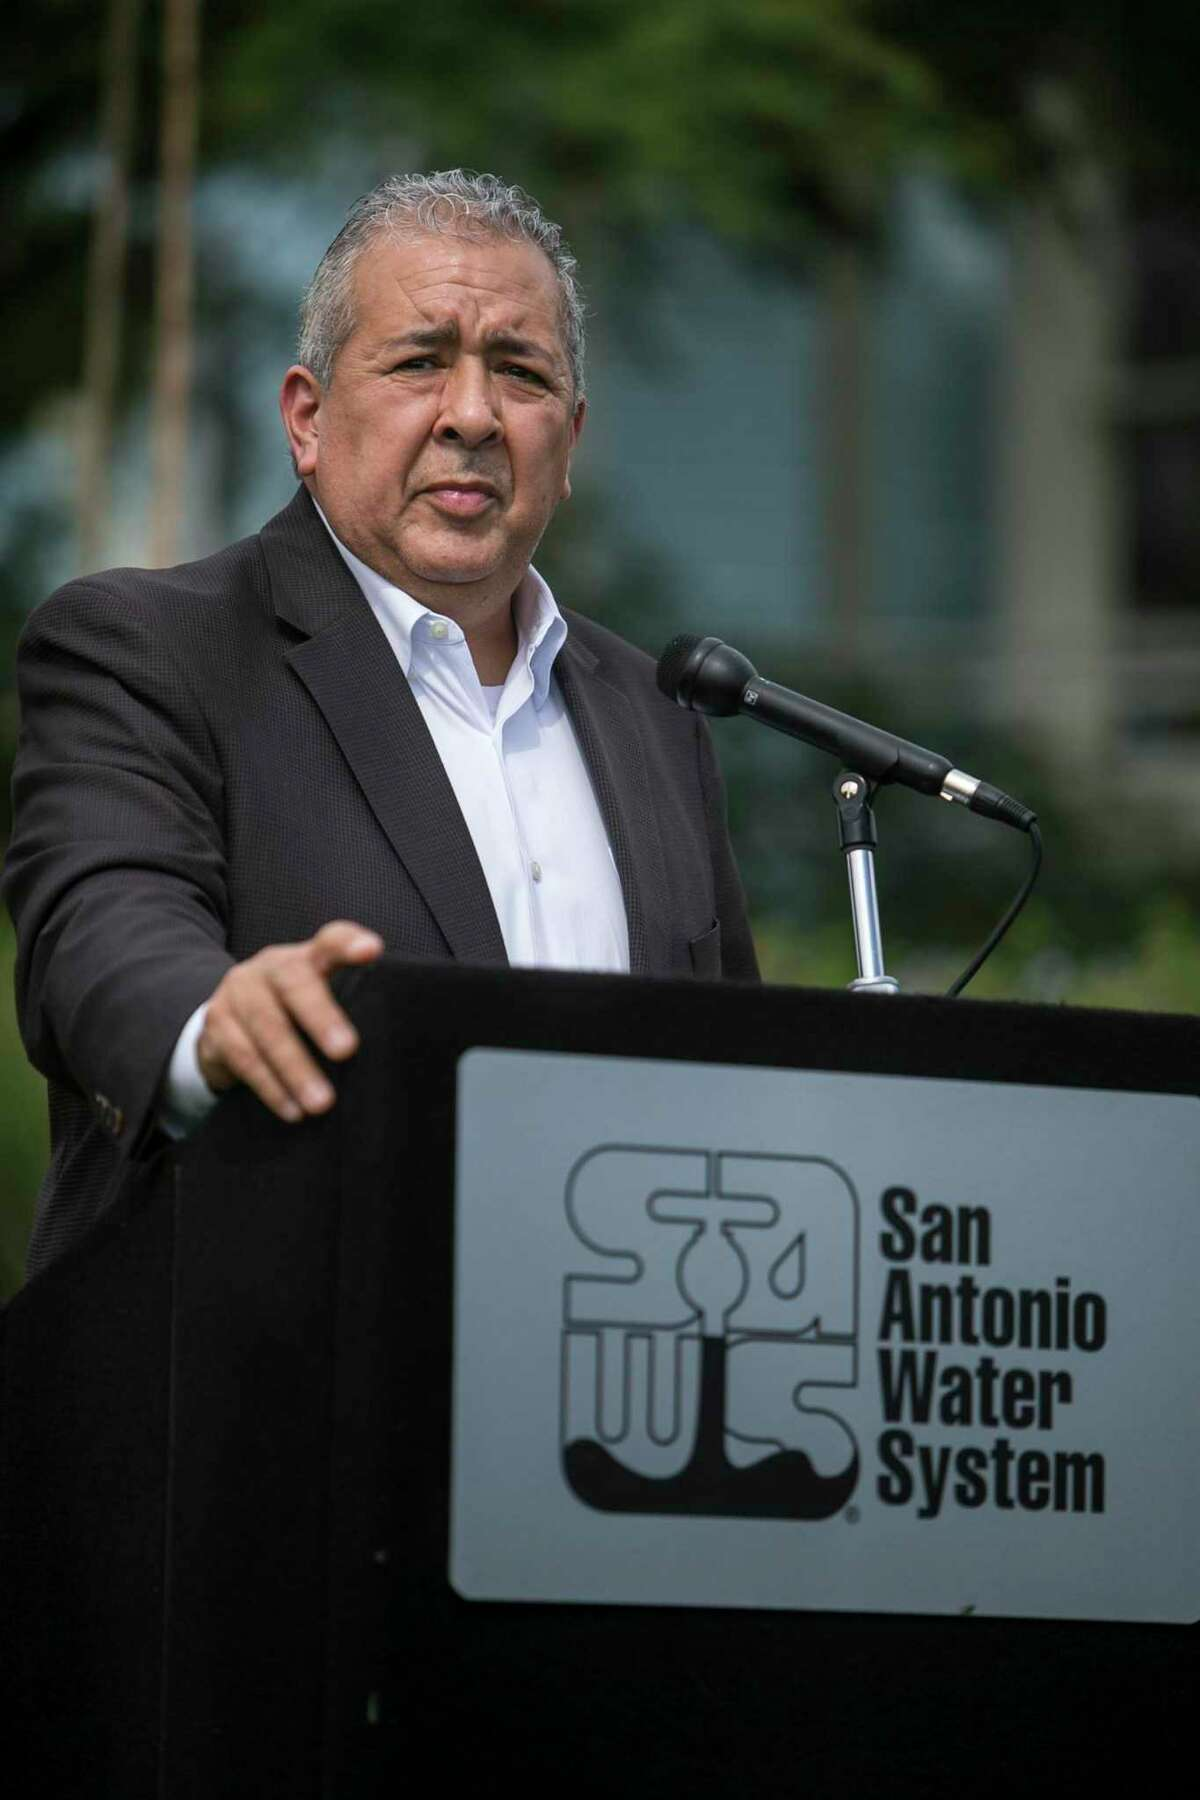 The SAWS Accountability Act would cap the tenure and salary of the chief executive. Robert Puente is the current president and CEO.